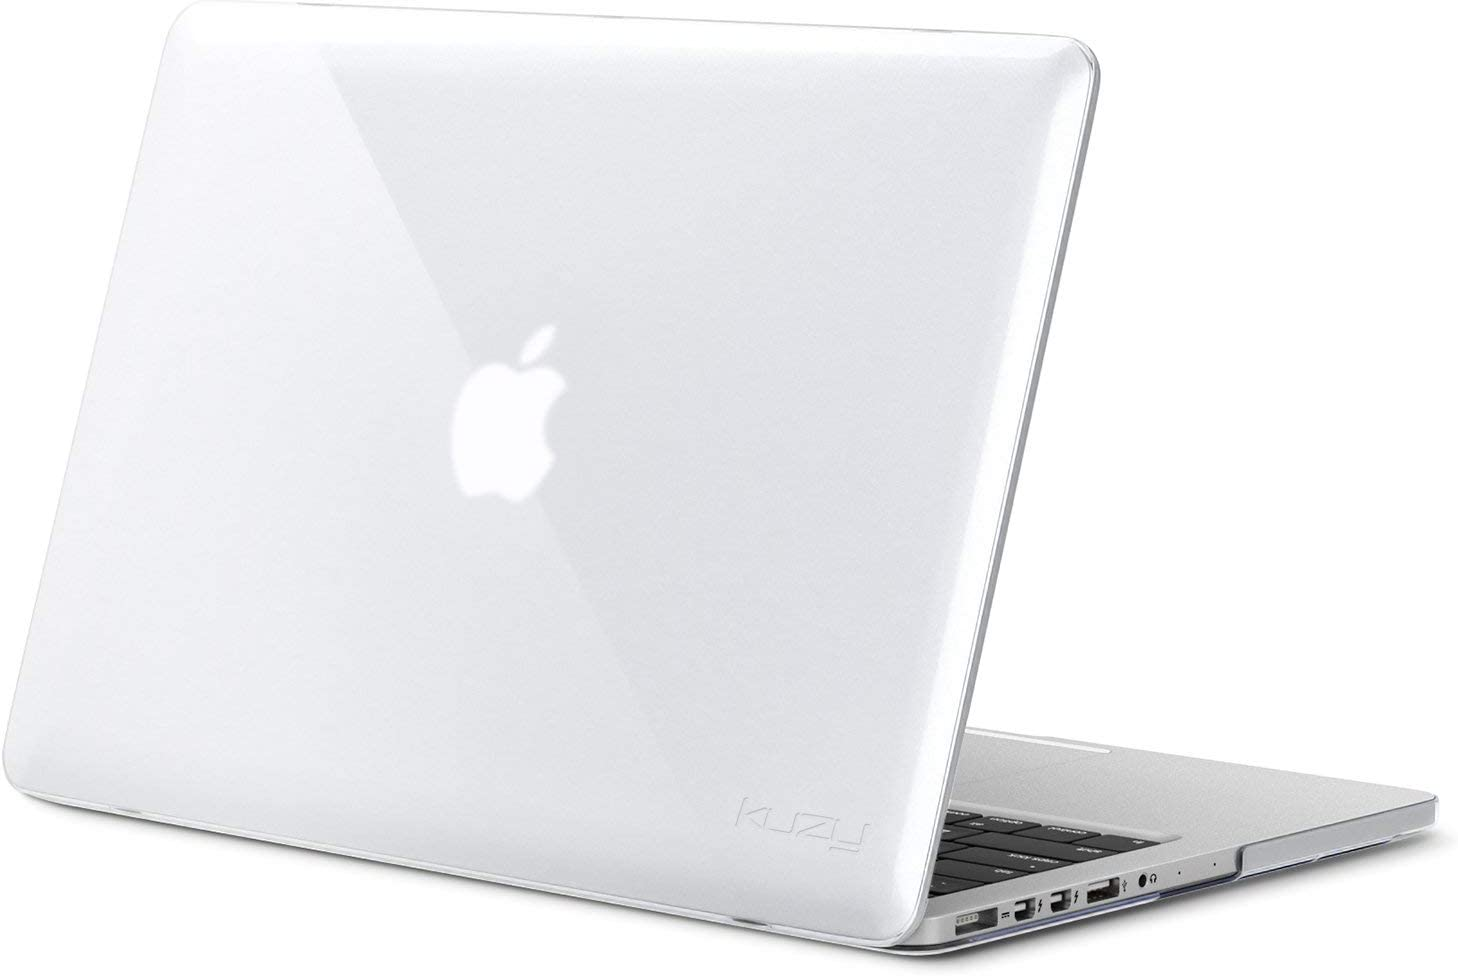 Kuzy - Older MacBook Pro 15.4 inch Case Model A1398 with Retina Display Soft Touch 15 inch Plastic Hard Shell Cover - Clear